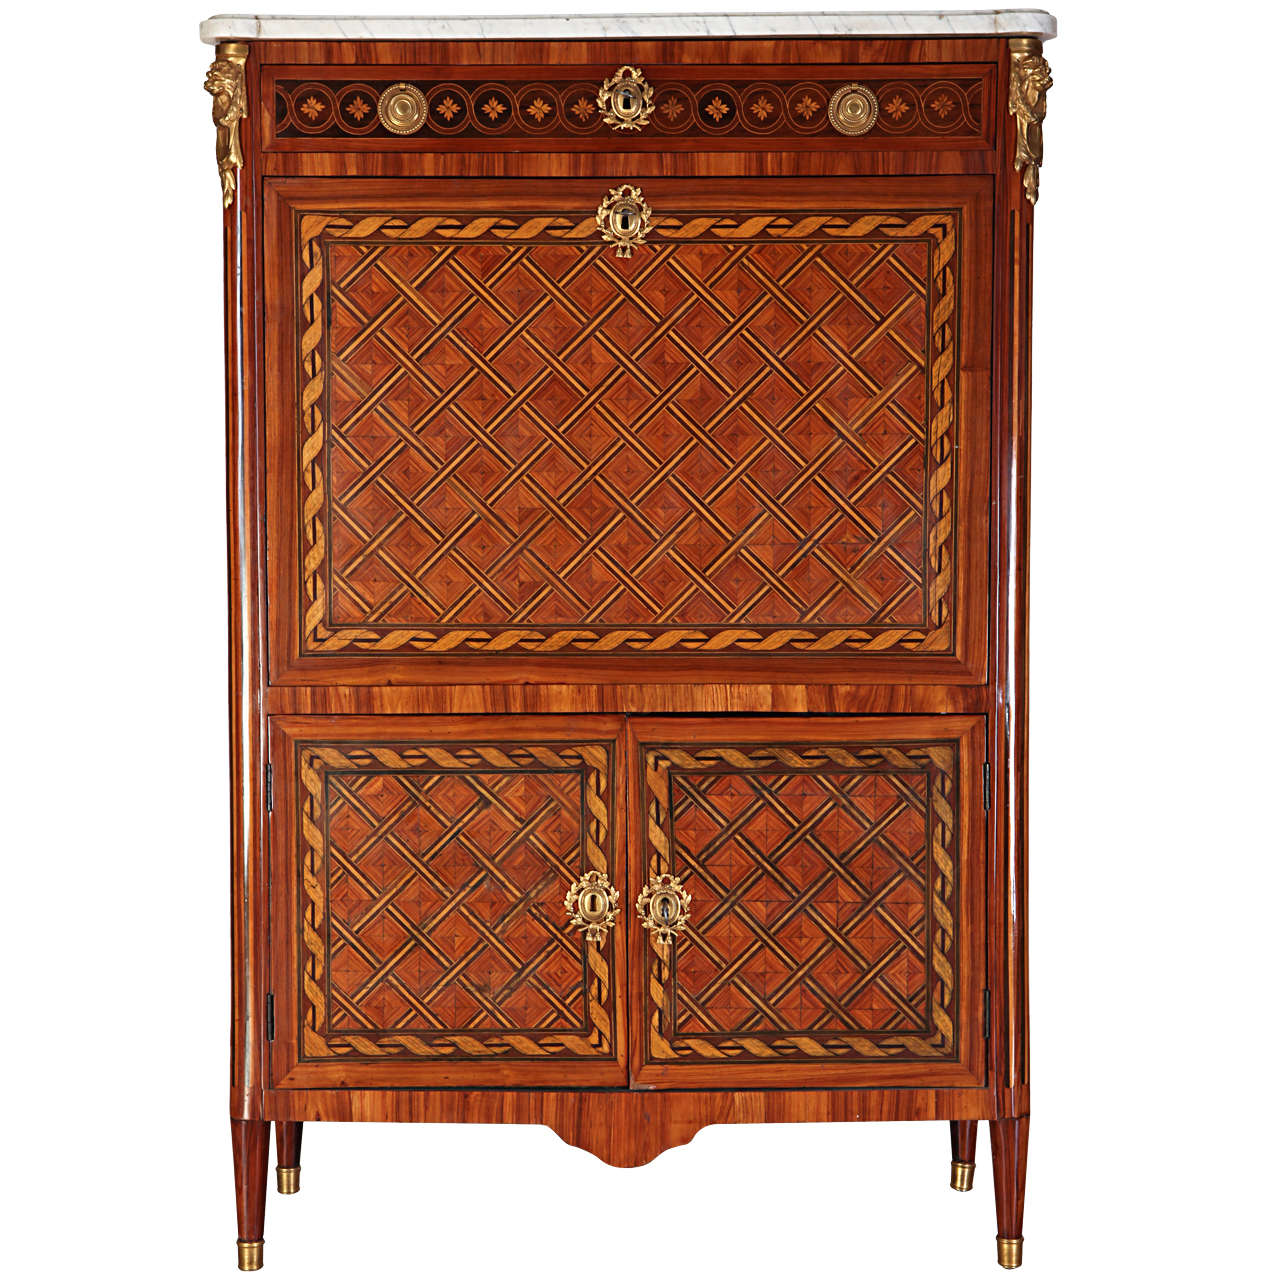 Fine French Ormolu-Mounted Marqueterie Secretaire Abattant